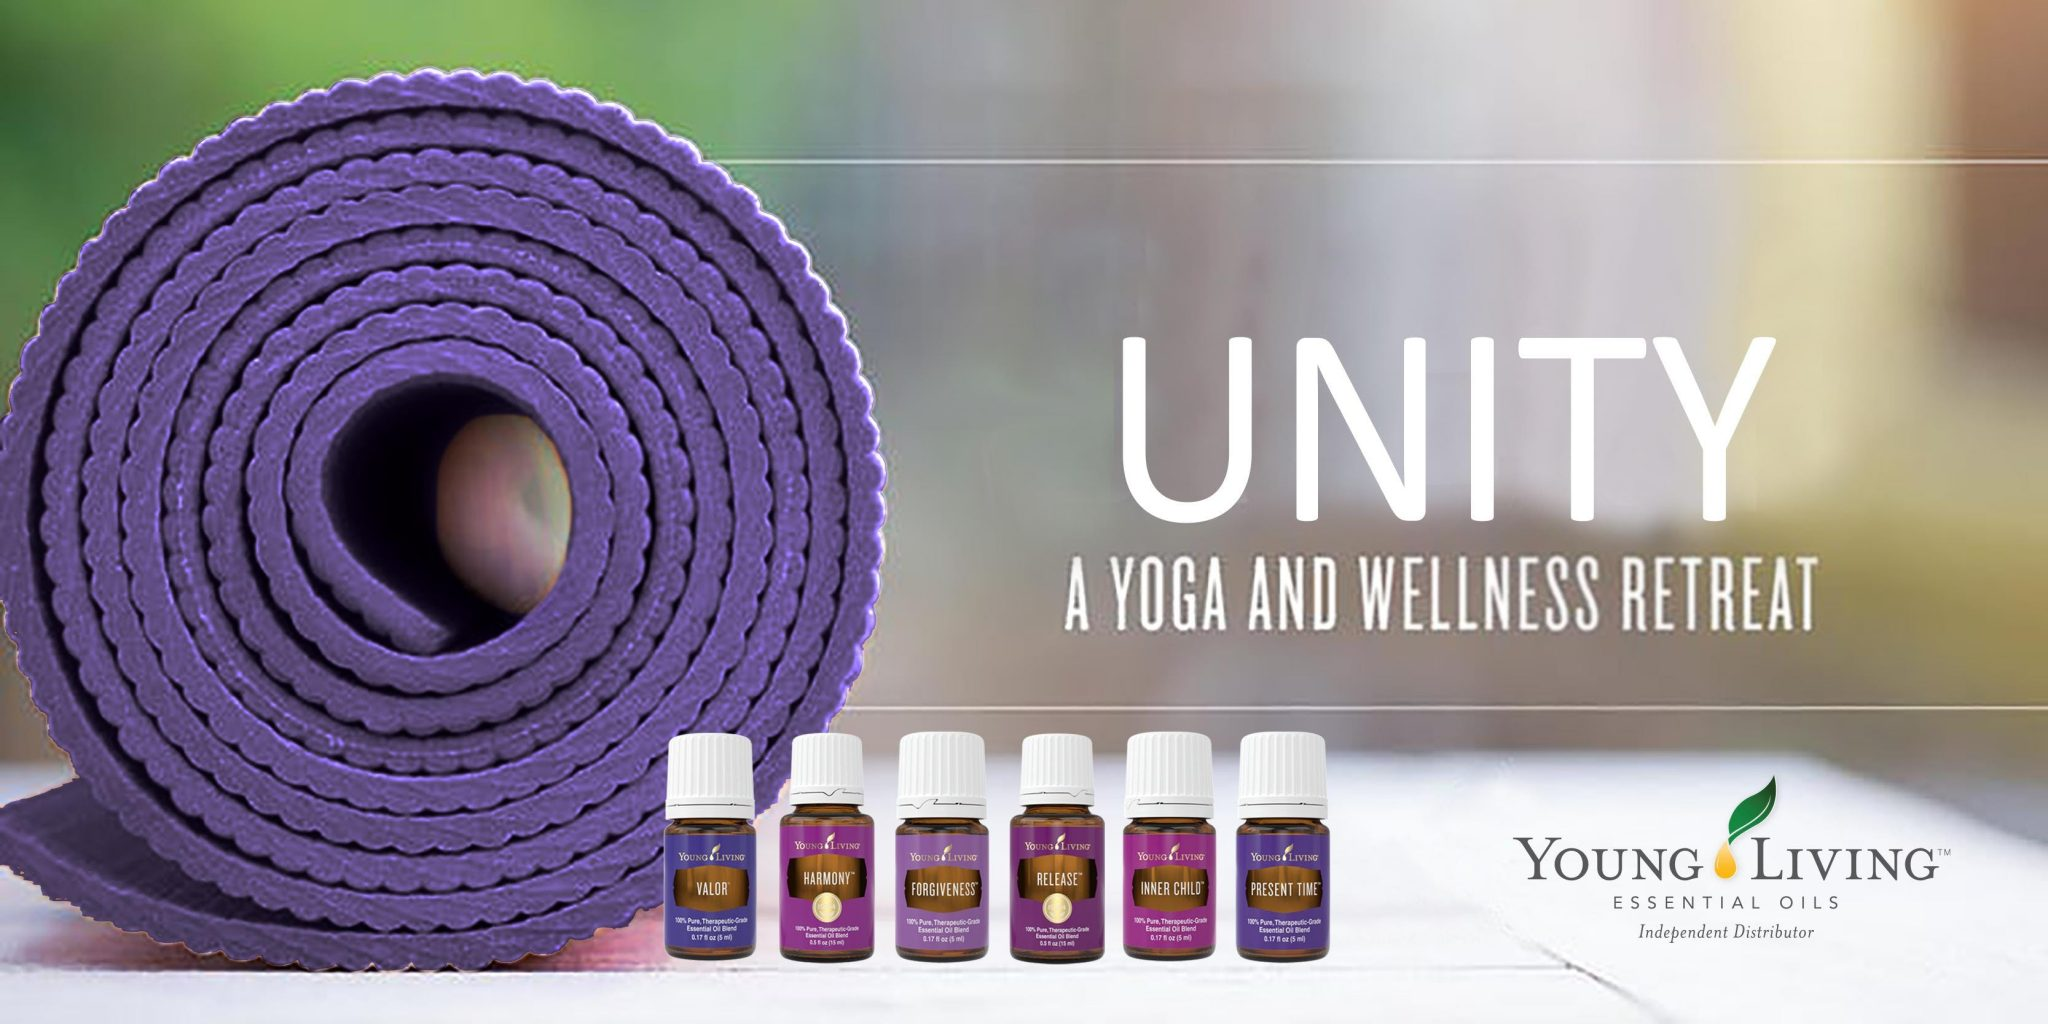 UNITY: A Yoga and Wellness Retreat < Head + Heart: A Mindful Calendar